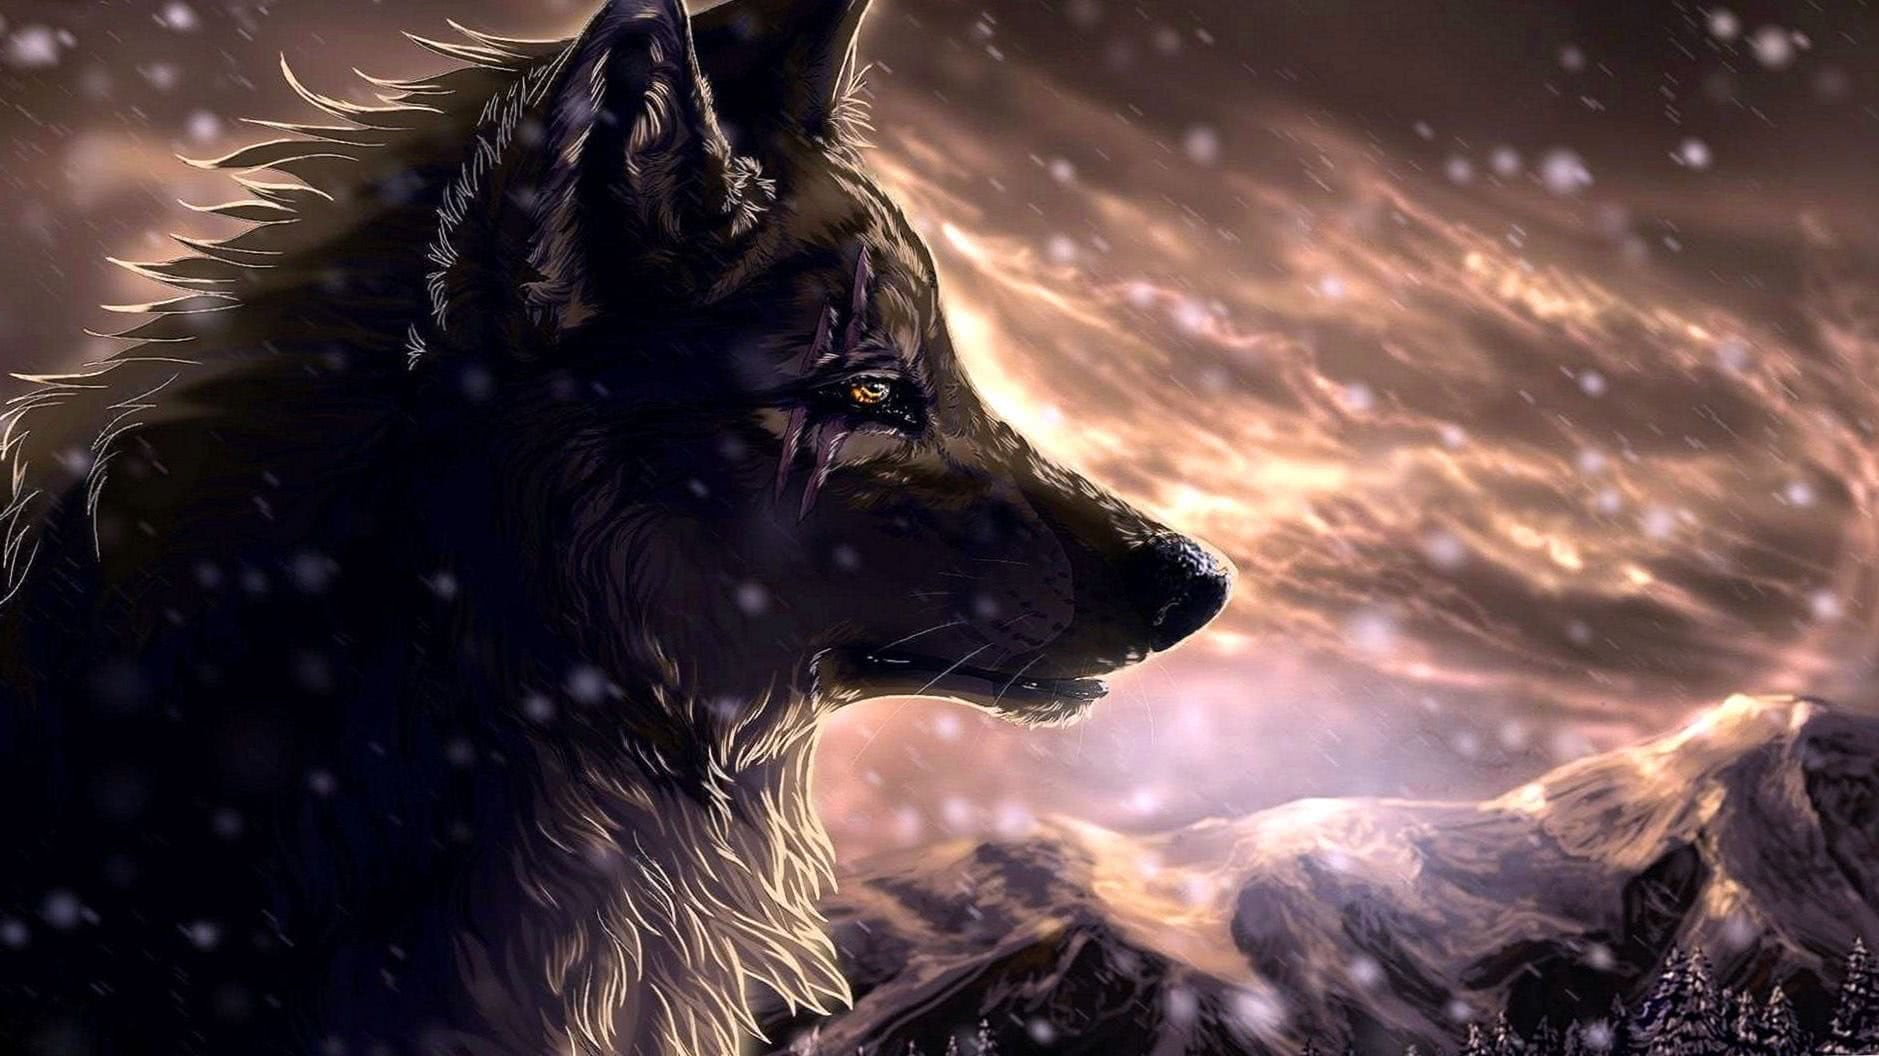 Wallpapers Images Wolves